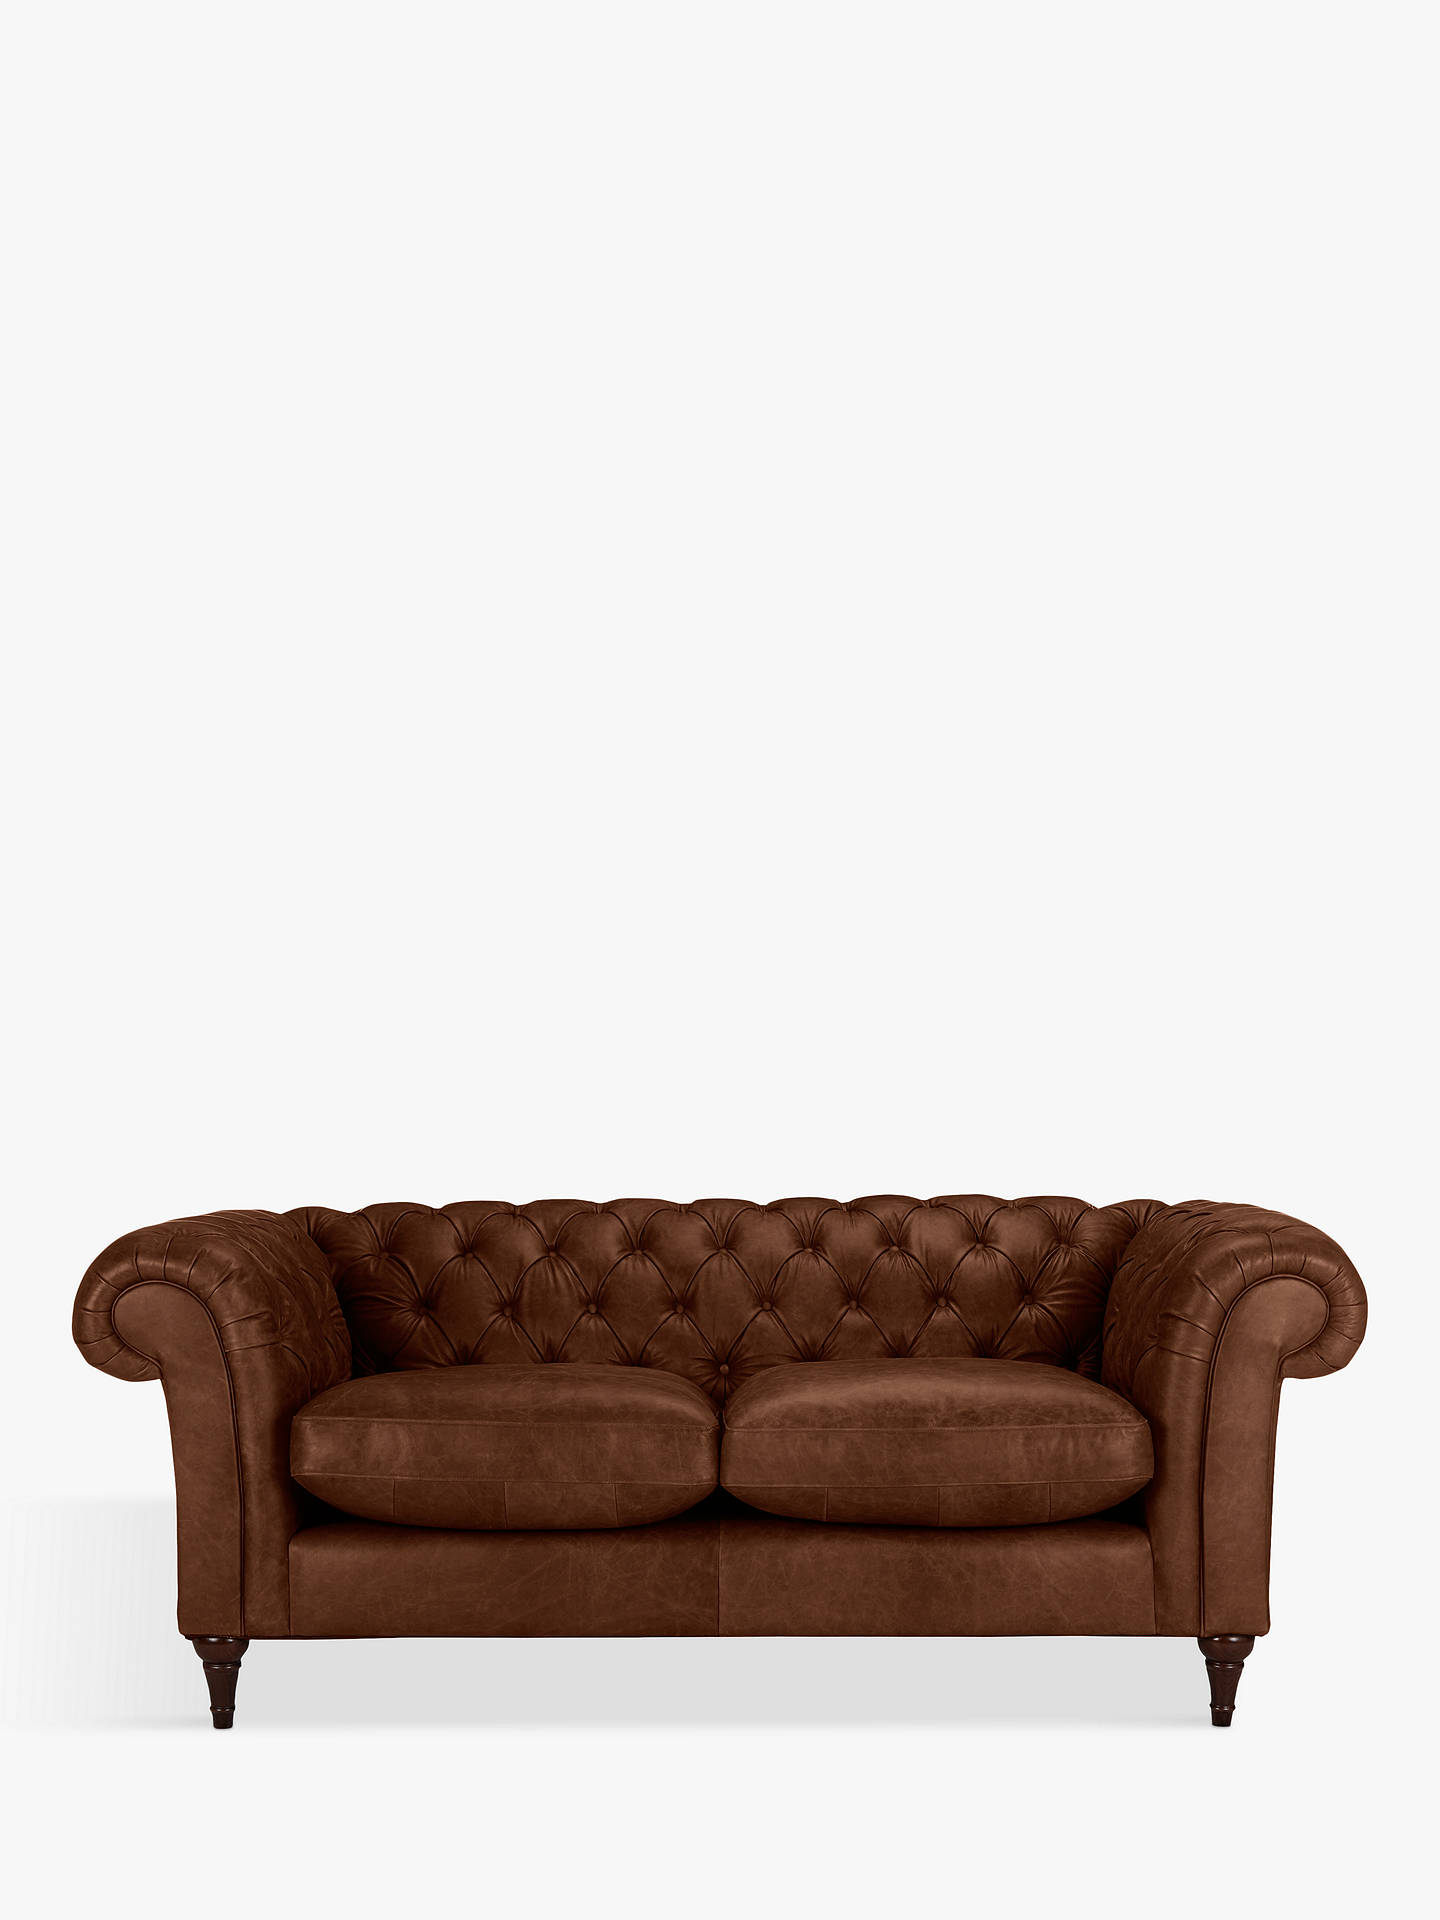 Buy John Lewis & Partners Cromwell Chesterfield Leather Large 3 Seater Sofa, Dark Leg, Contempo Castanga Online at johnlewis.com